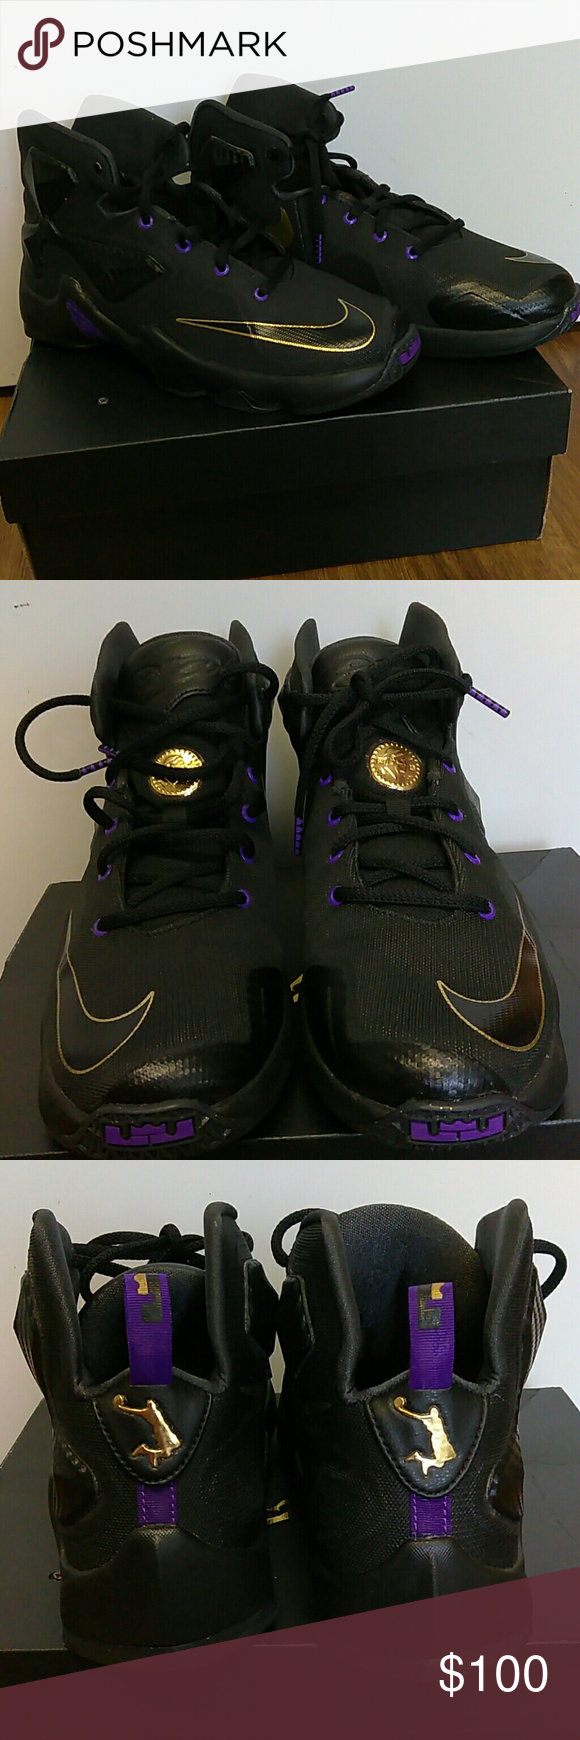 separation shoes 3cf25 5f568 Lebron James Nike Jordans LeBron James Black,purple and gold Nike Jordans  youth size 7,in good condition Nike Shoes Sneakers